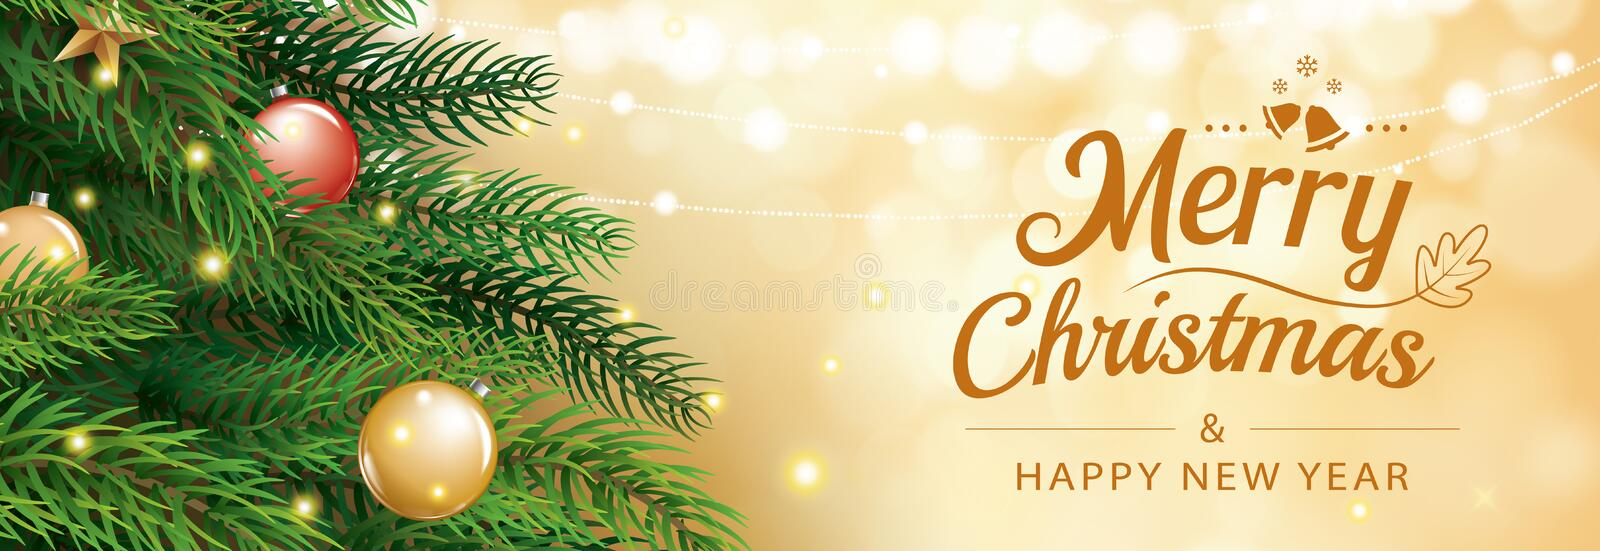 Christmas greeting card with tree and gold blur bokeh lights background. Xmas and happy new year. Vector illustration for vector illustration